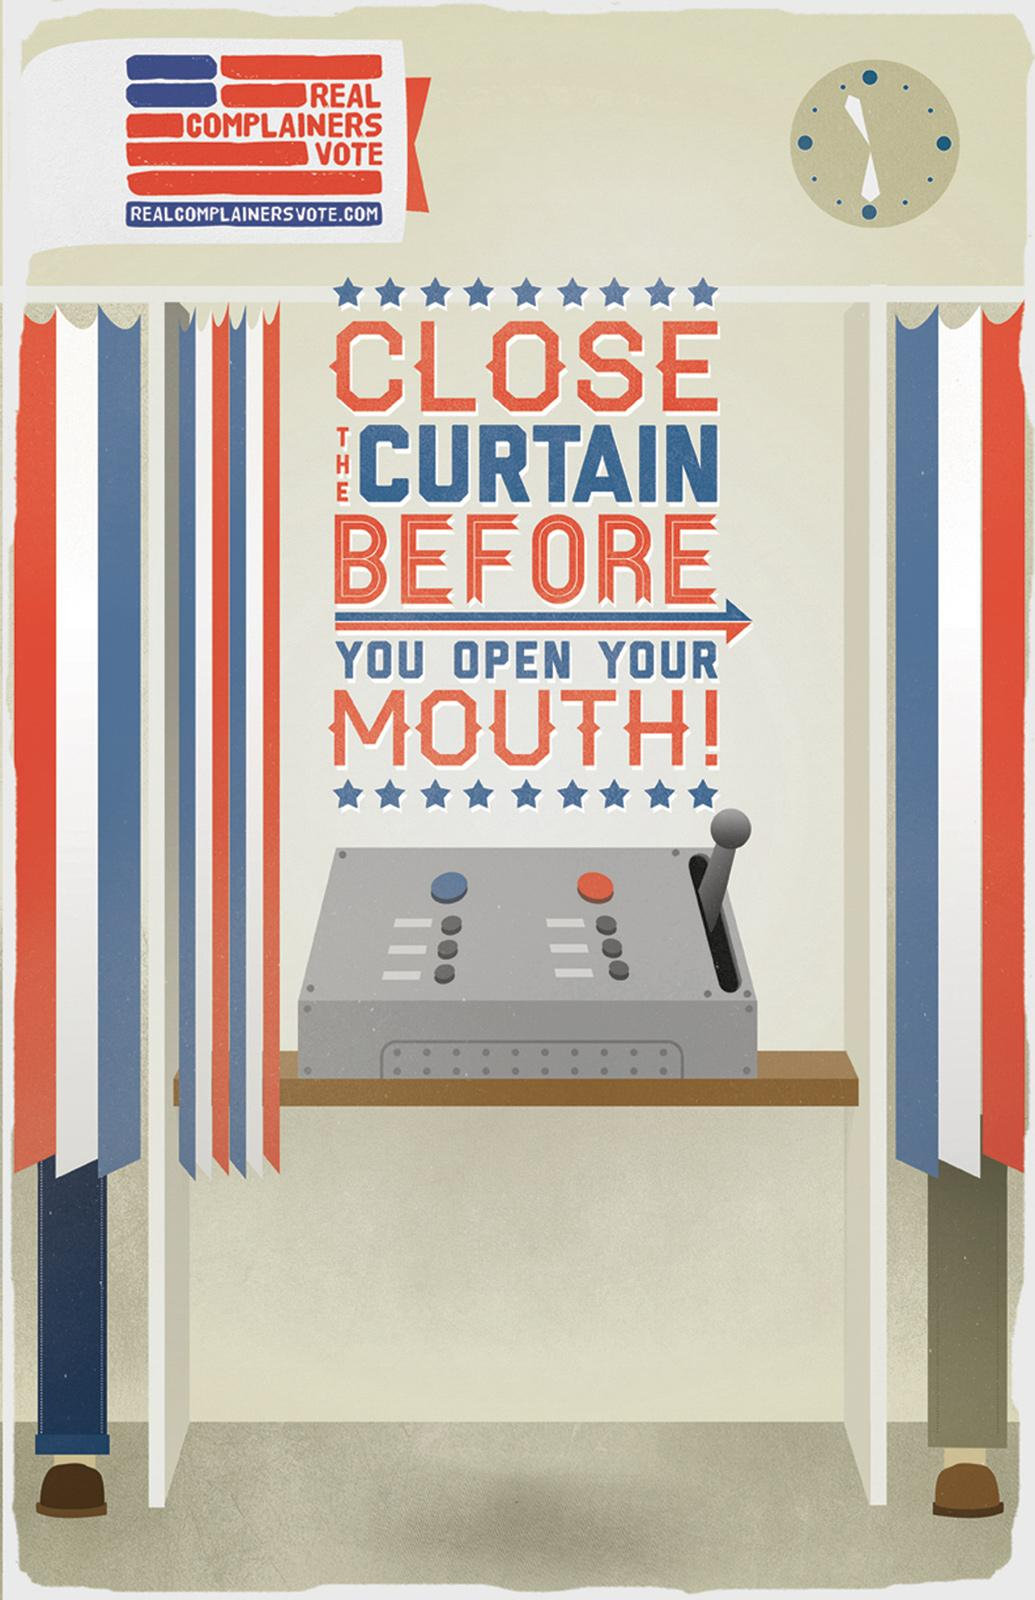 Real Complainers Vote Outdoor Ad -  Close the curtain before you open your mouth